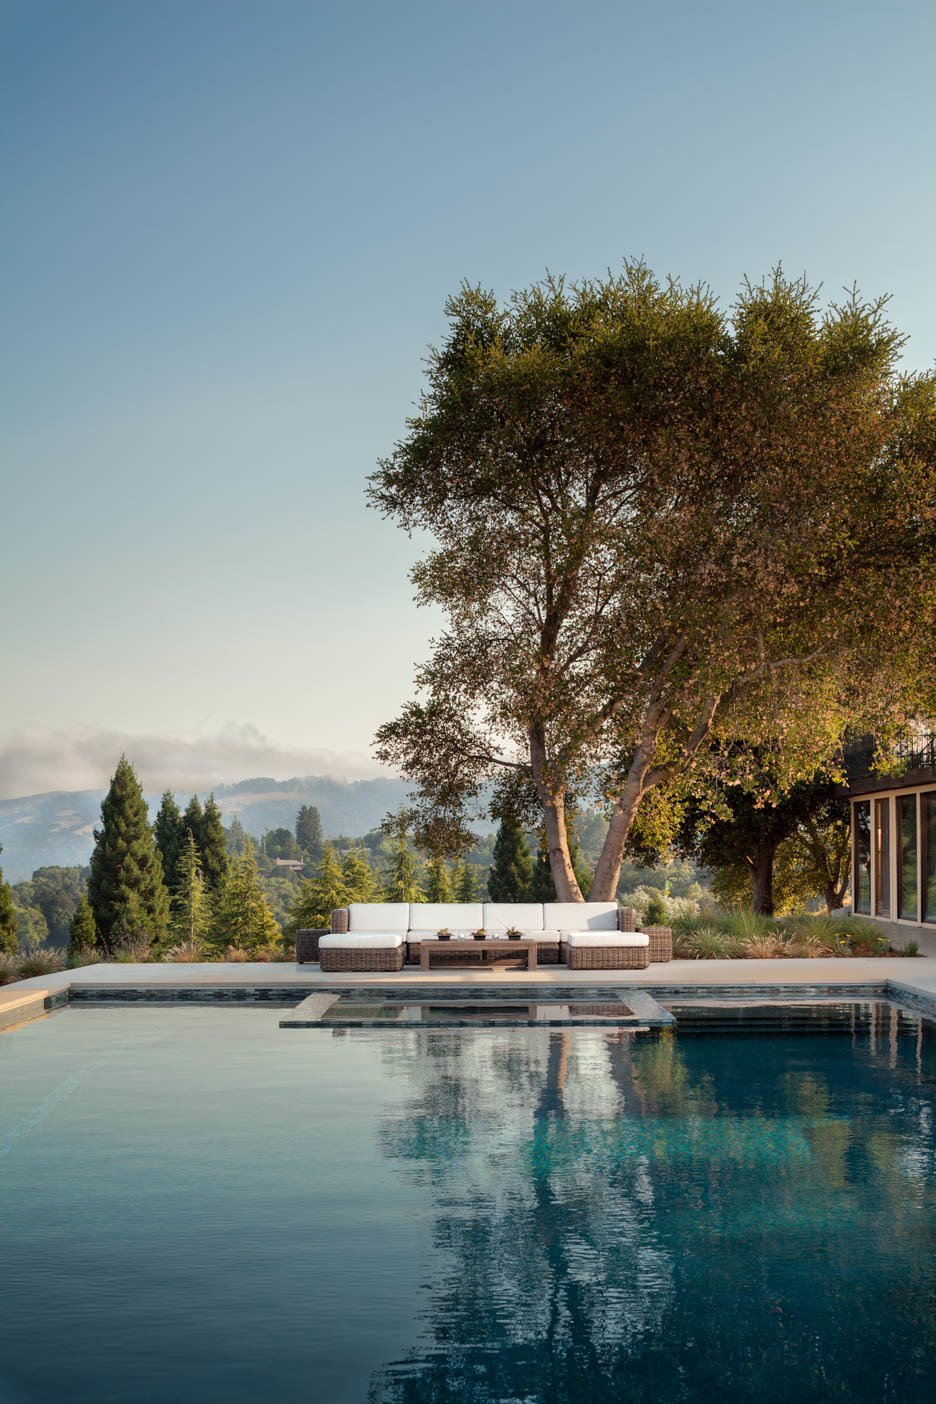 Outdoor, Back Yard, Trees, Hardscapes, Large Pools, Tubs, Shower, and Large Patio, Porch, Deck  A pool with a view by Agnieszka Jakubowicz